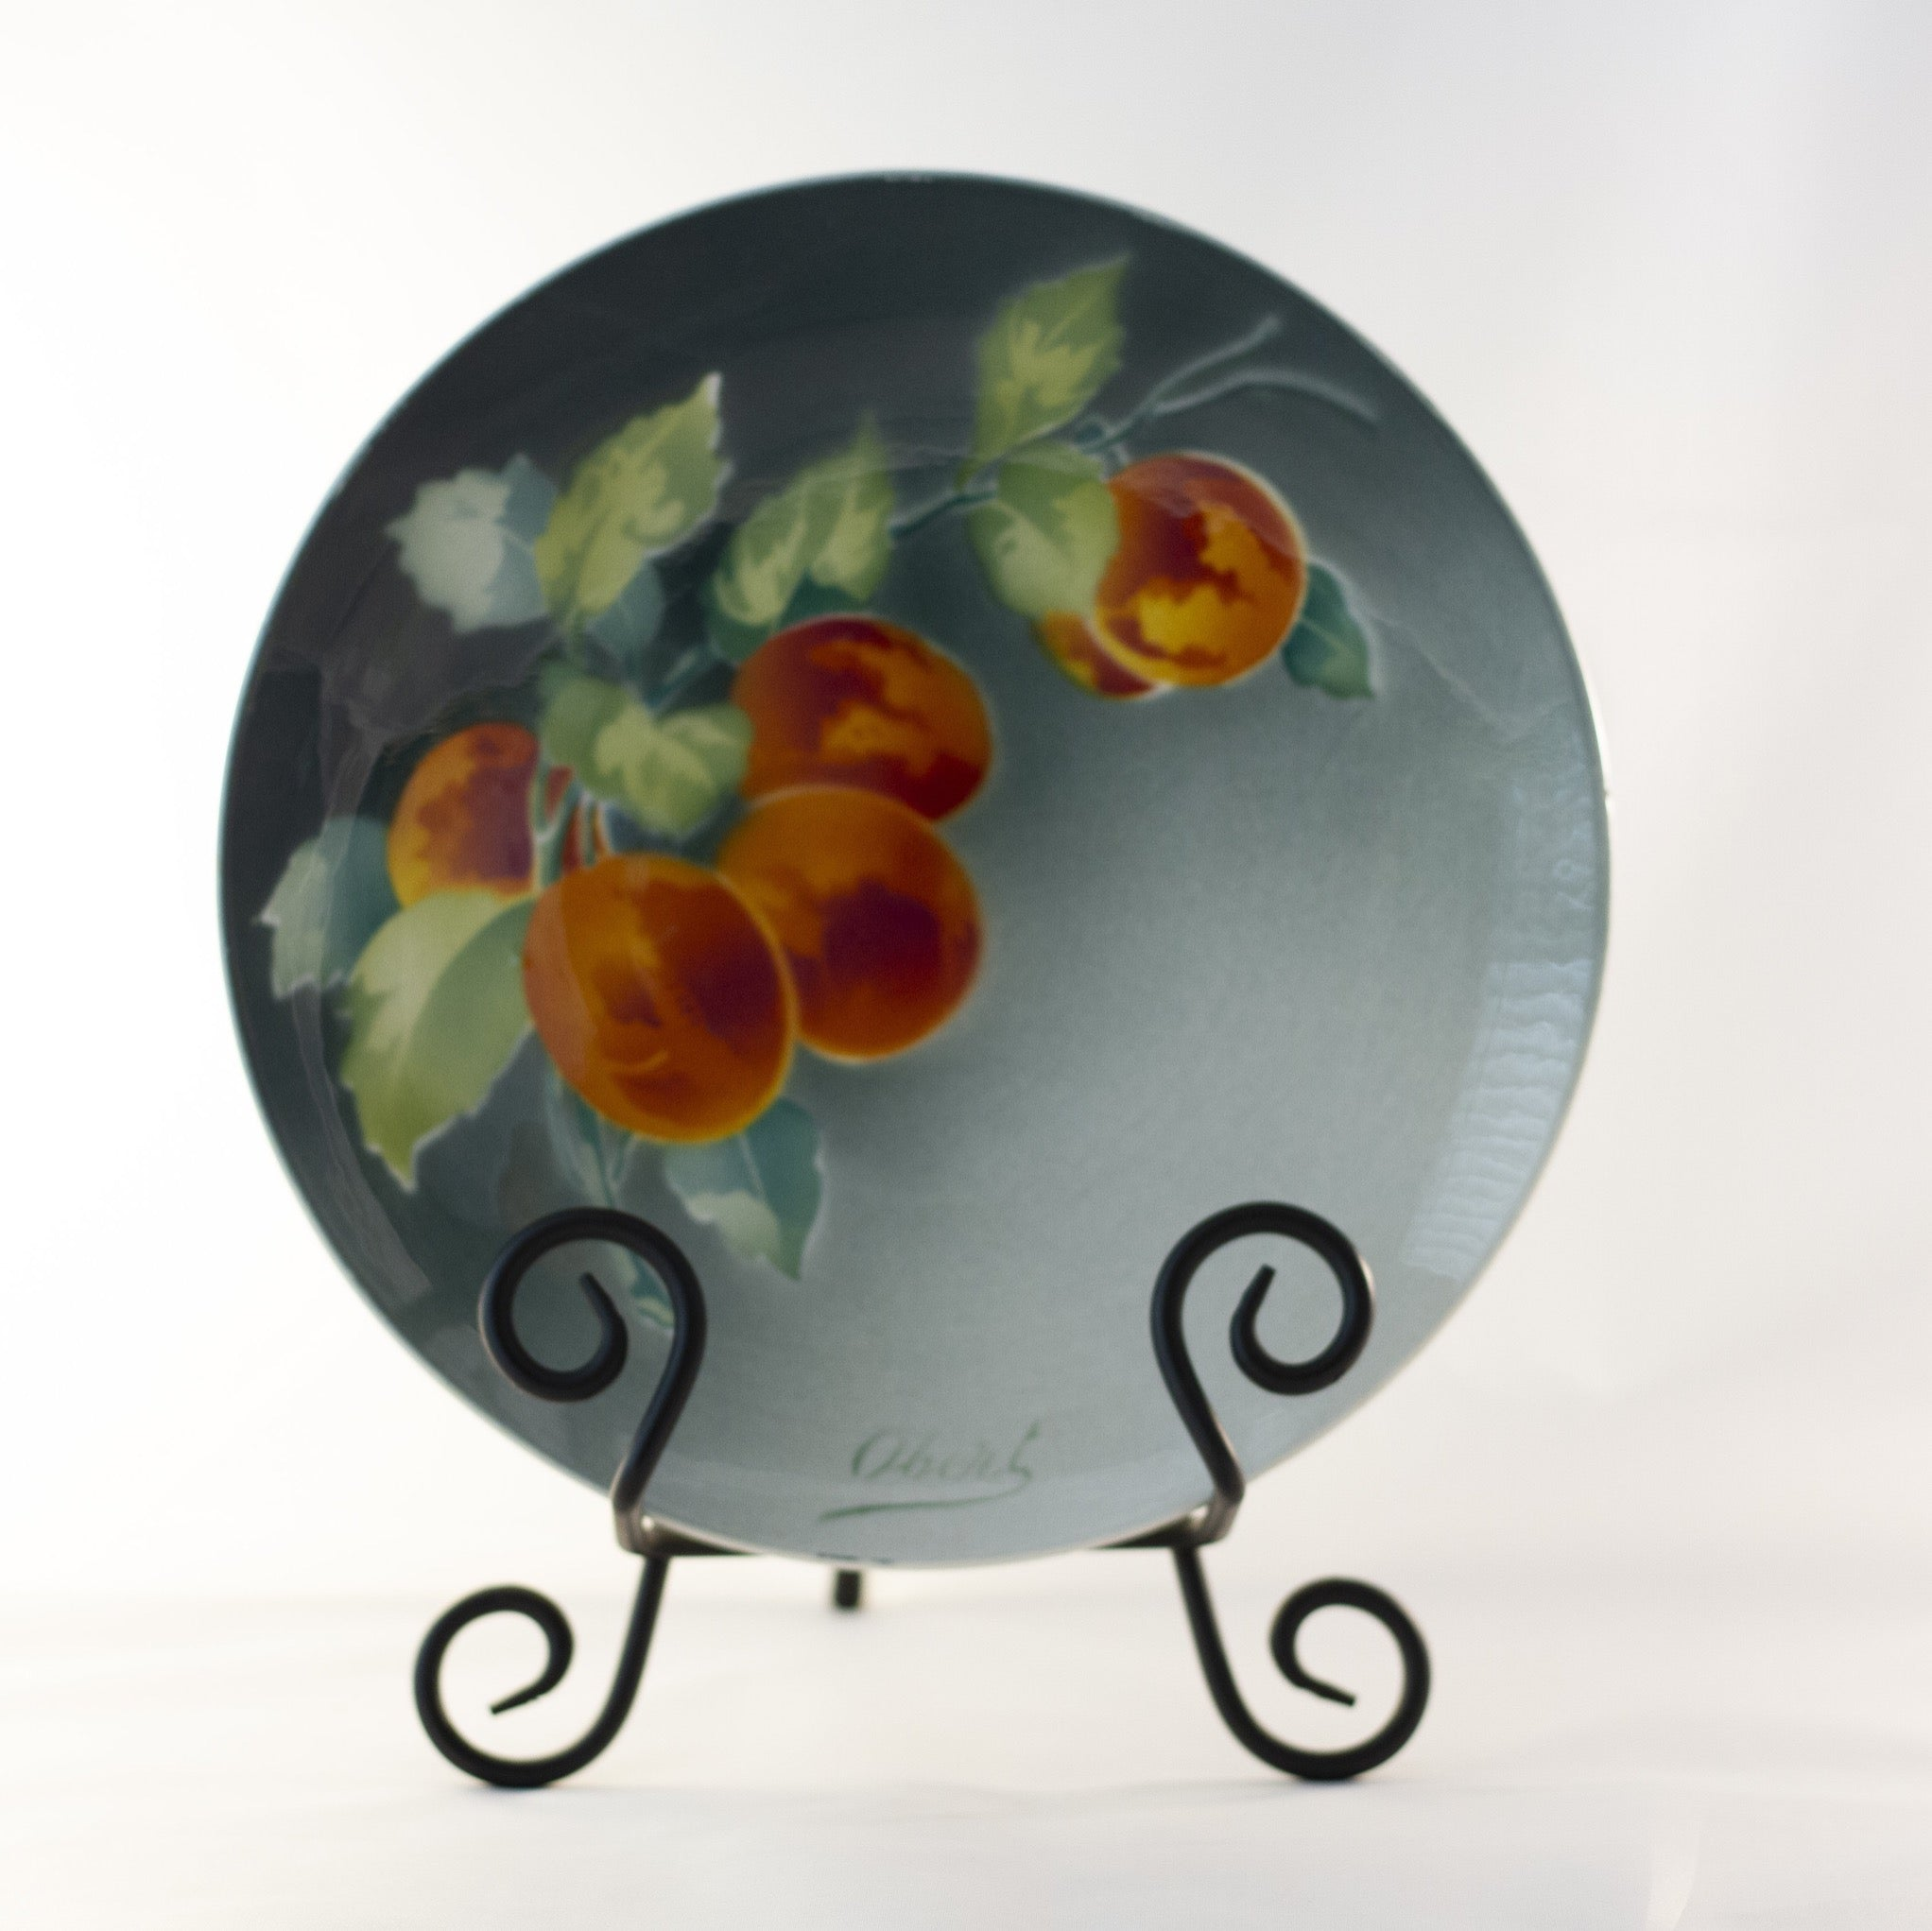 "K & G LUNÉVILLE FRENCH FAIENCE PLATE HAND PAINTED APRICOTS 8 ½"" Signed Obert Circa 1900"